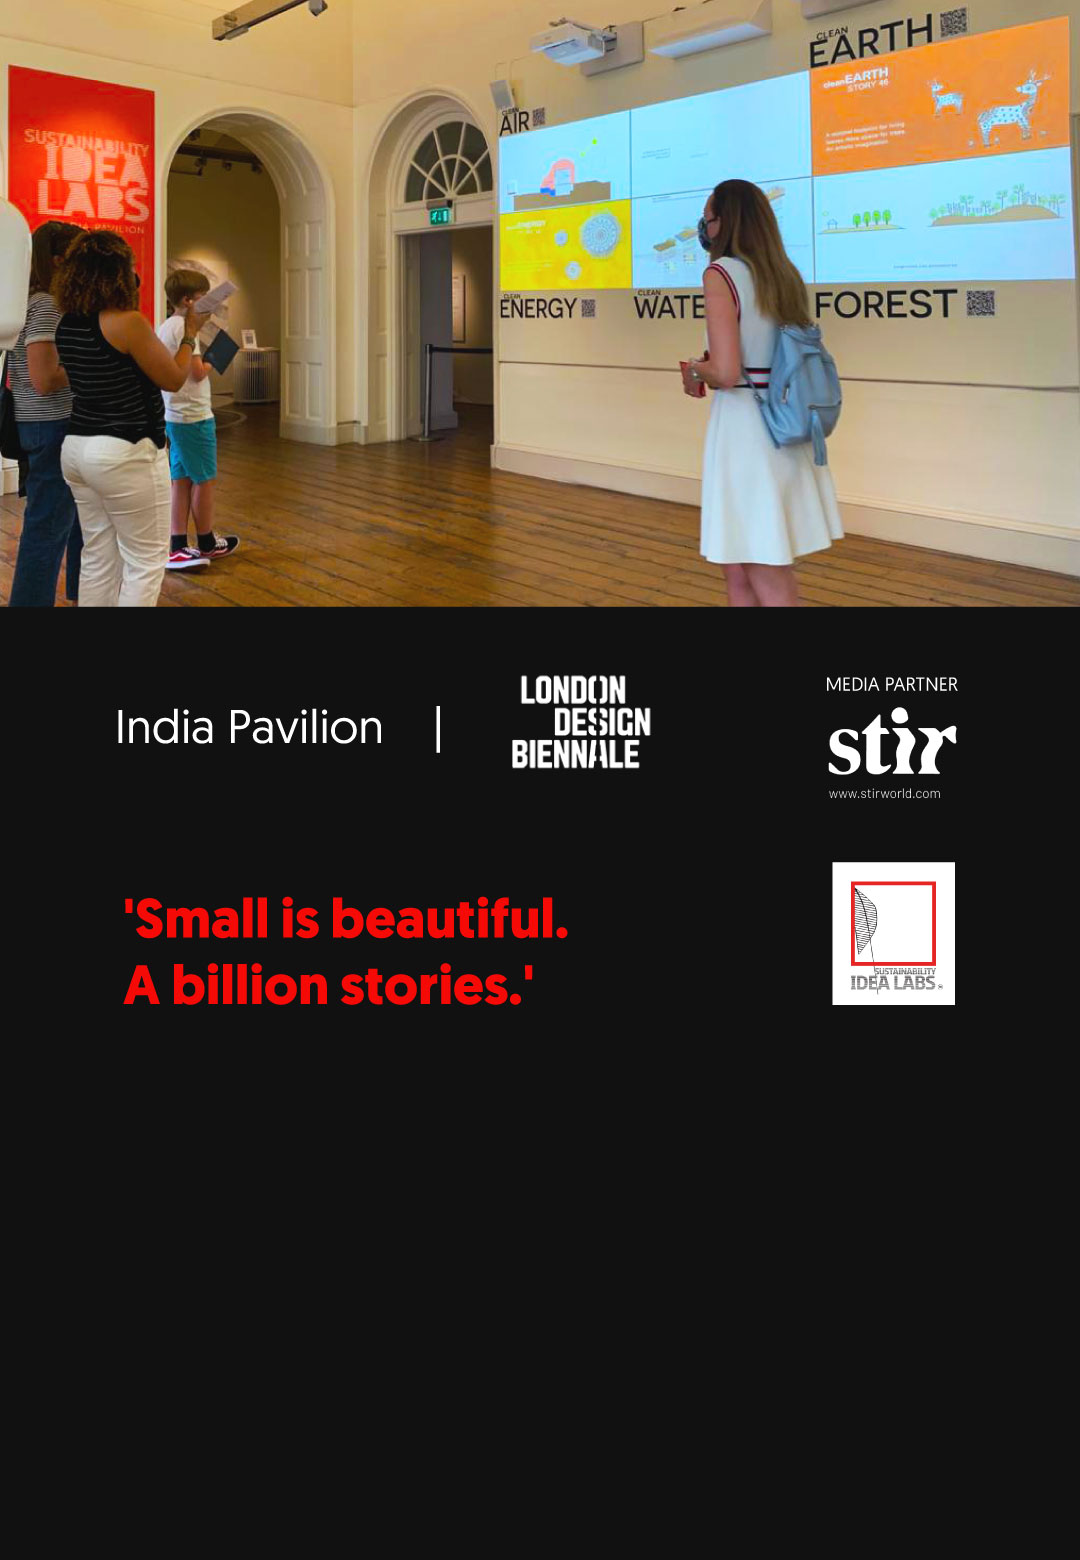 The India Pavilion at the London Design Biennale 2021 is now open at Somerset House, featuring innovative ideas from all across the subcontinent | London Design Biennale 2021 – India Pavilion | STIRworld